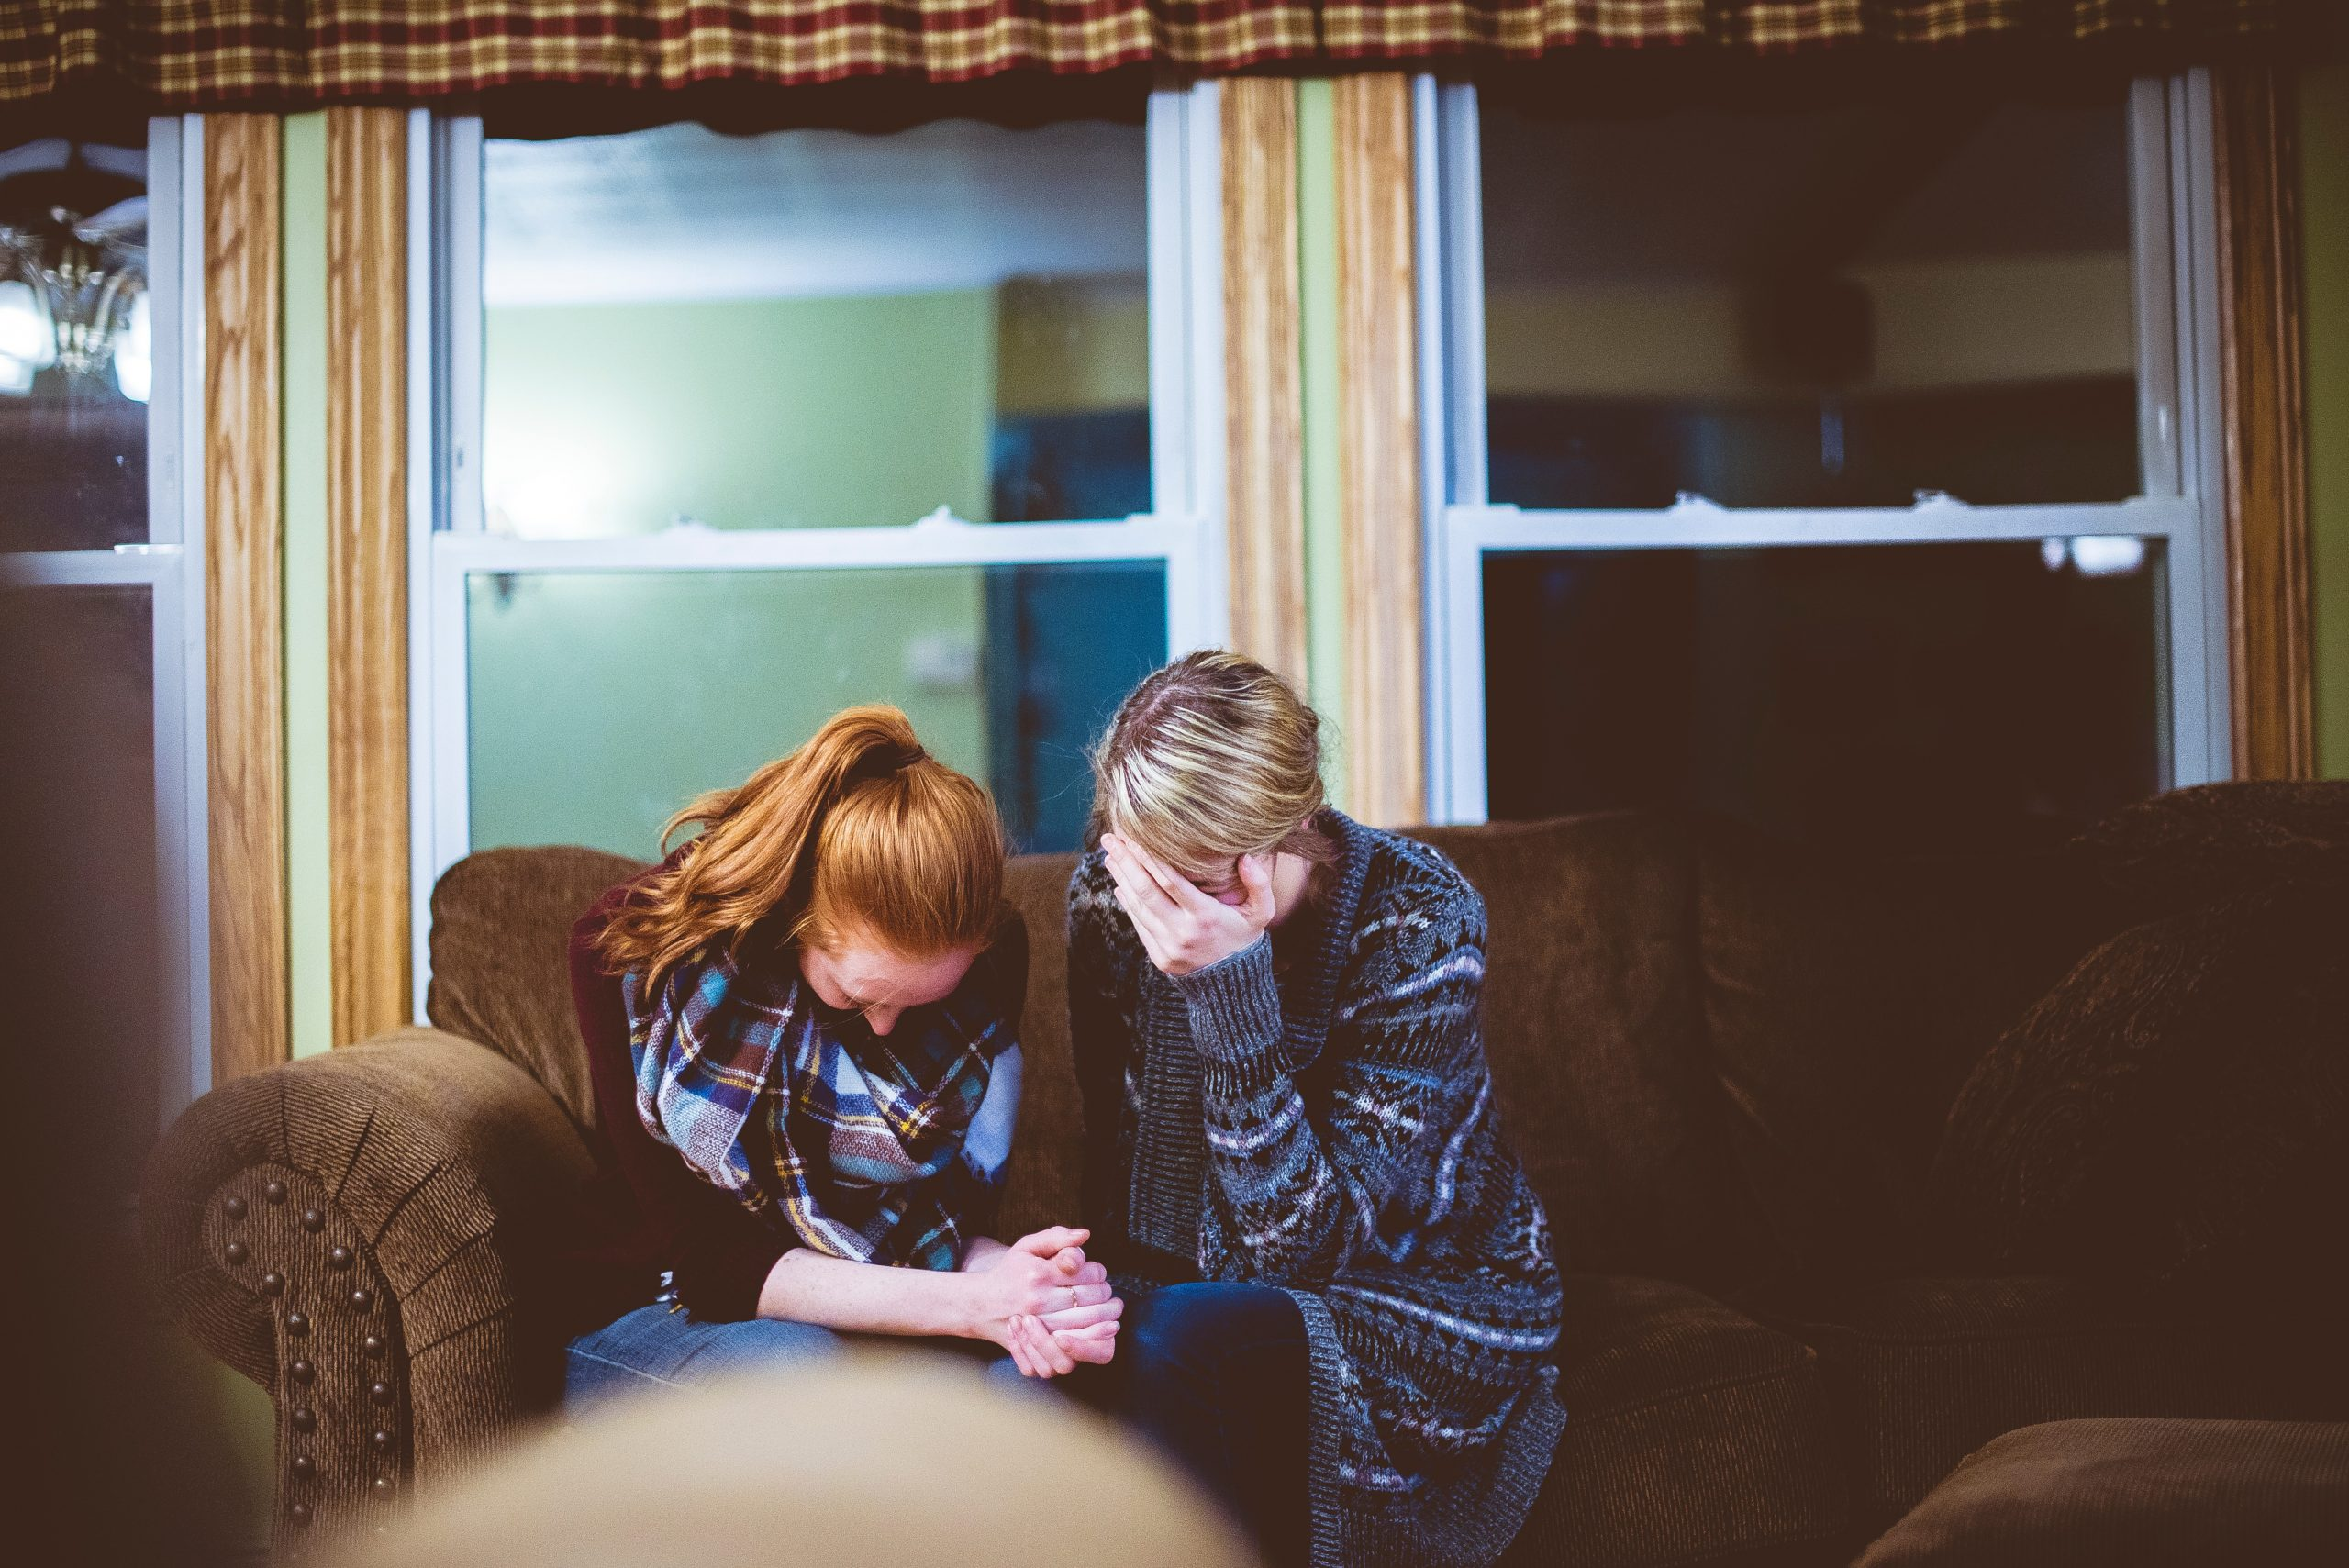 Two women sitting on a couch who are upset and crying